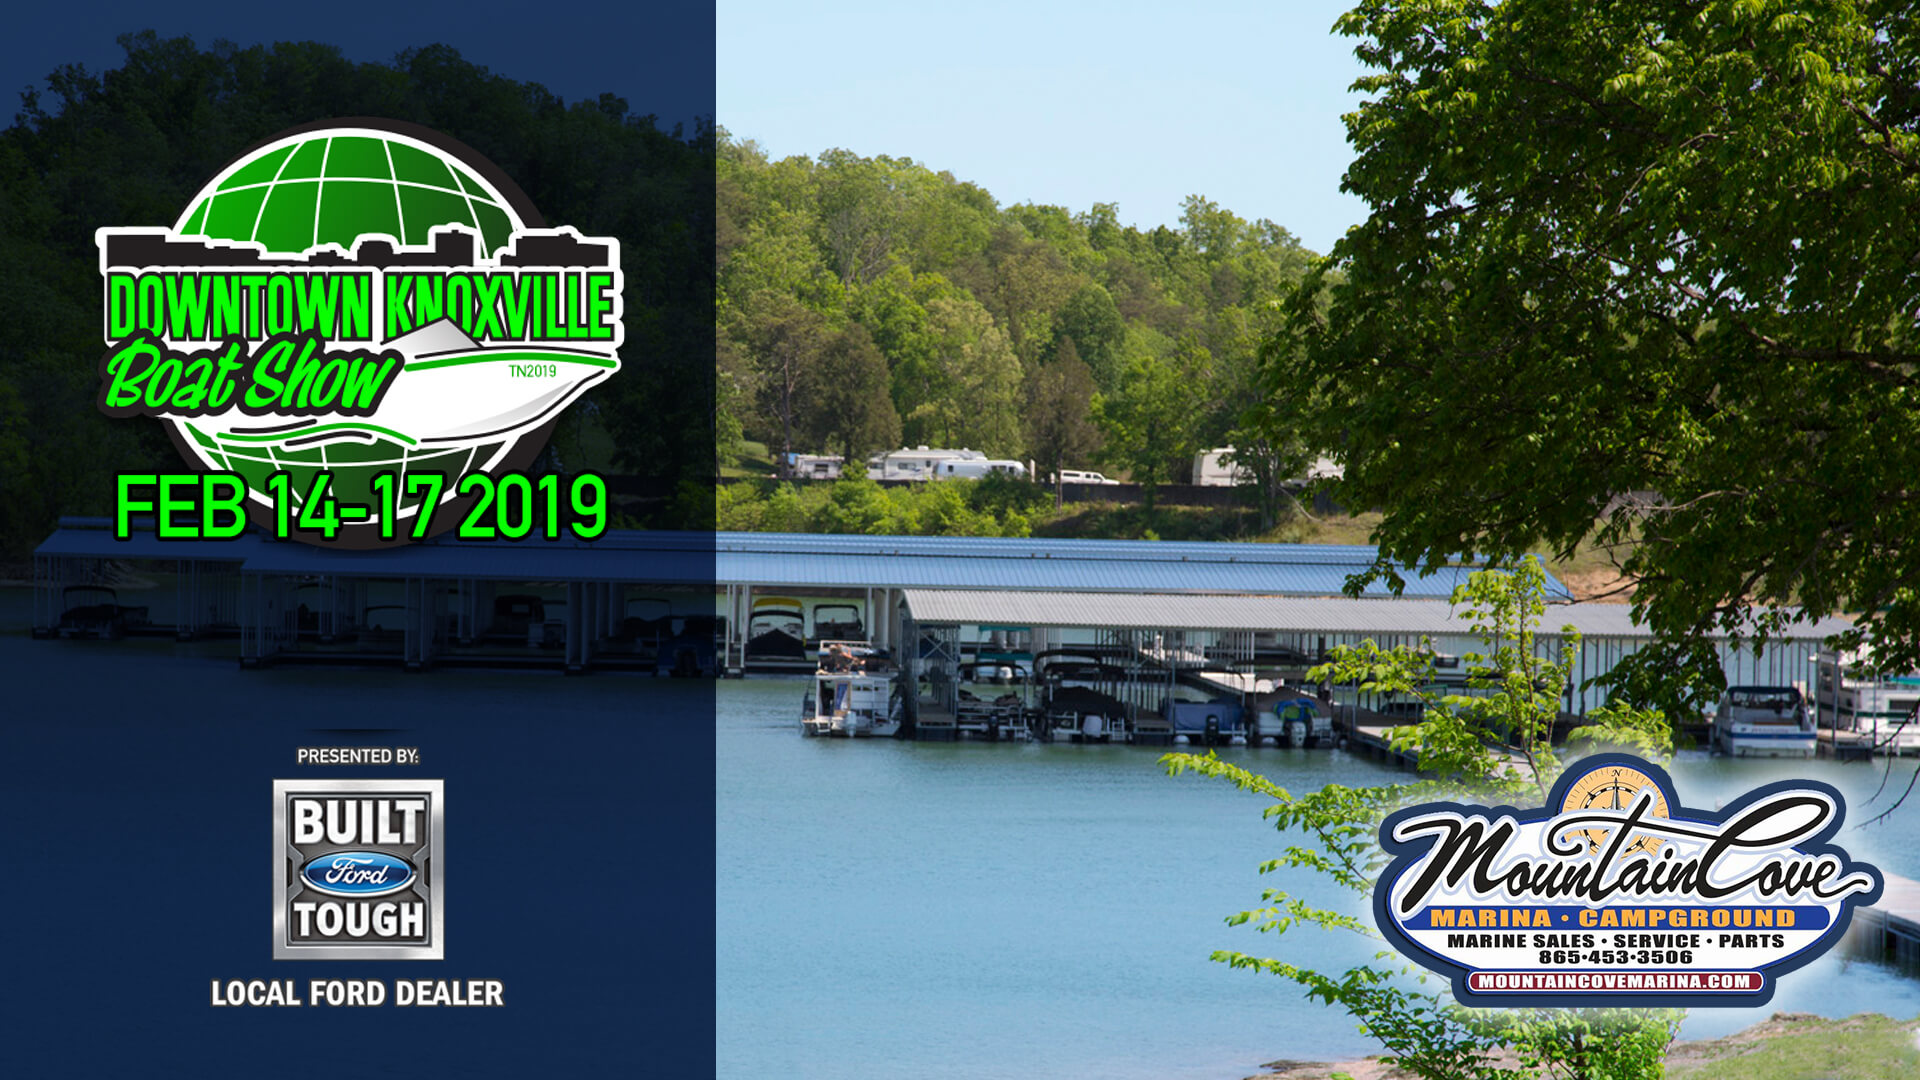 2019 Downtown Knoxville Boat Show